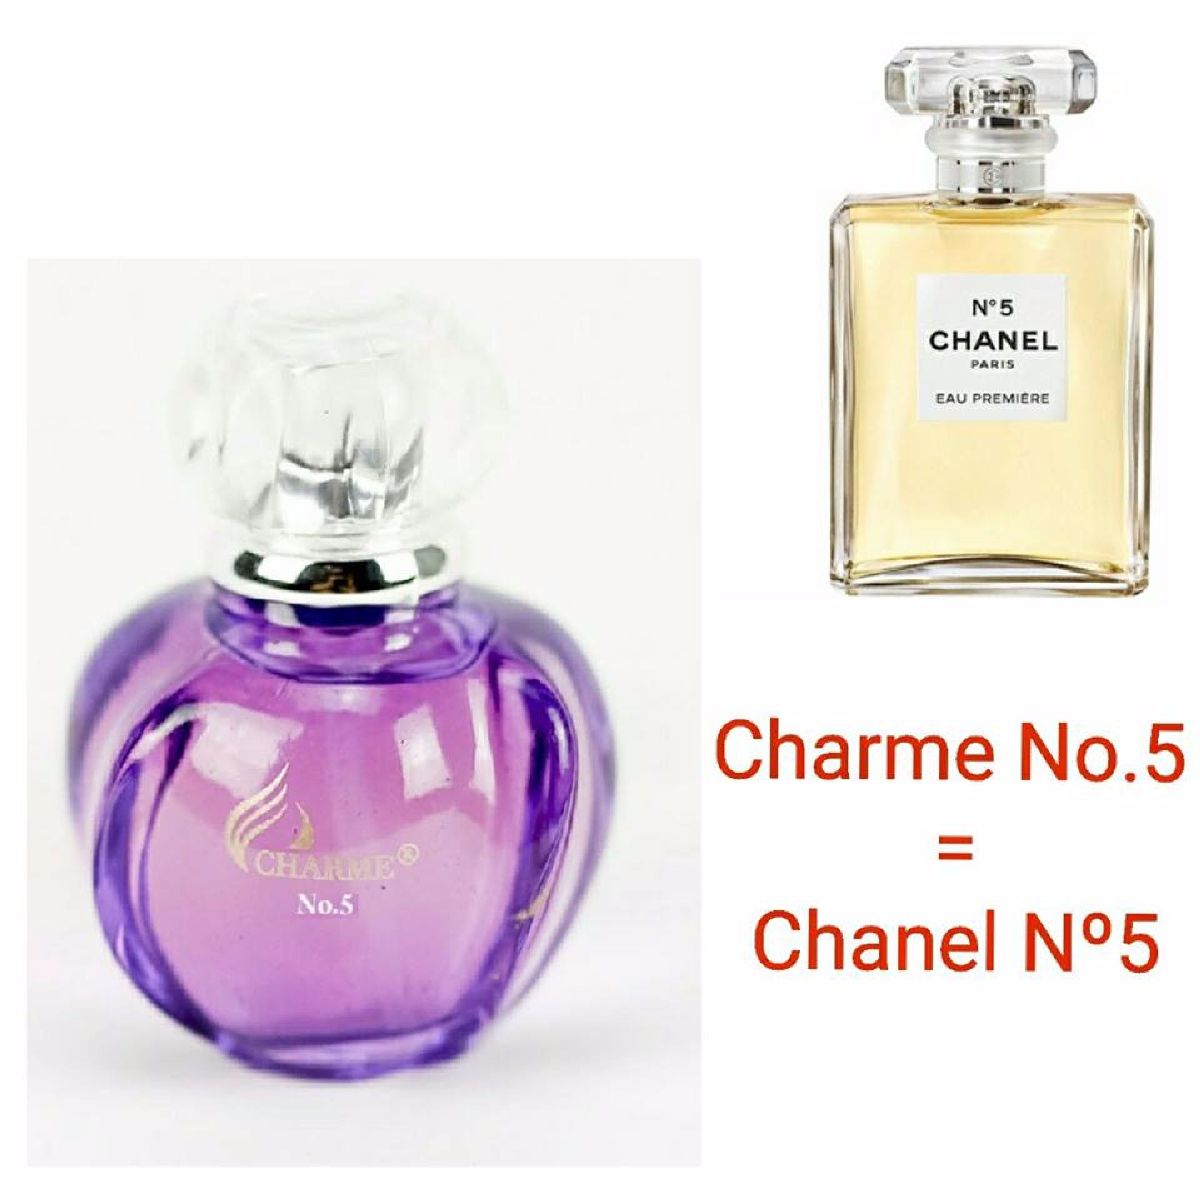 http://shopdep24h.com/images/nuoc-hoa-charme/charme-no5/nuoc-hoa-charme-no-5-25ml-nu-1504695650-1-3771497-1504695650.jpg